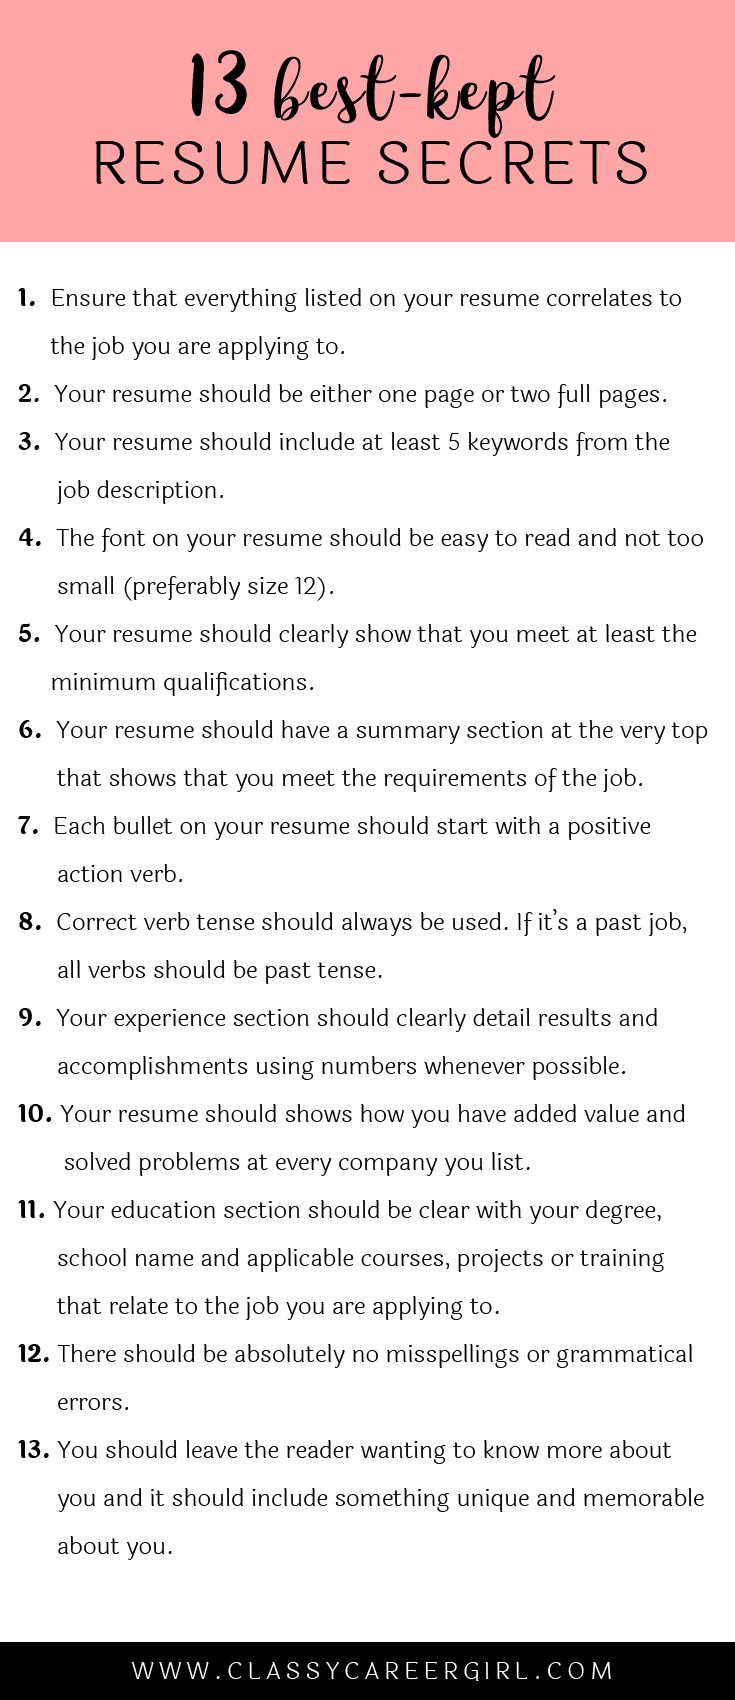 Opposenewapstandardsus  Marvelous  Ideas About Resume On Pinterest  Cv Format Resume Cv And  With Interesting Some Hiring Managers Will Toss Your Resume Out If You Dont Know These  With Alluring Resume It Also What To Put On Resume For Skills In Addition Great Resume Formats And Teachers Resume Example As Well As Sales Person Resume Additionally Sales Skills For Resume From Pinterestcom With Opposenewapstandardsus  Interesting  Ideas About Resume On Pinterest  Cv Format Resume Cv And  With Alluring Some Hiring Managers Will Toss Your Resume Out If You Dont Know These  And Marvelous Resume It Also What To Put On Resume For Skills In Addition Great Resume Formats From Pinterestcom